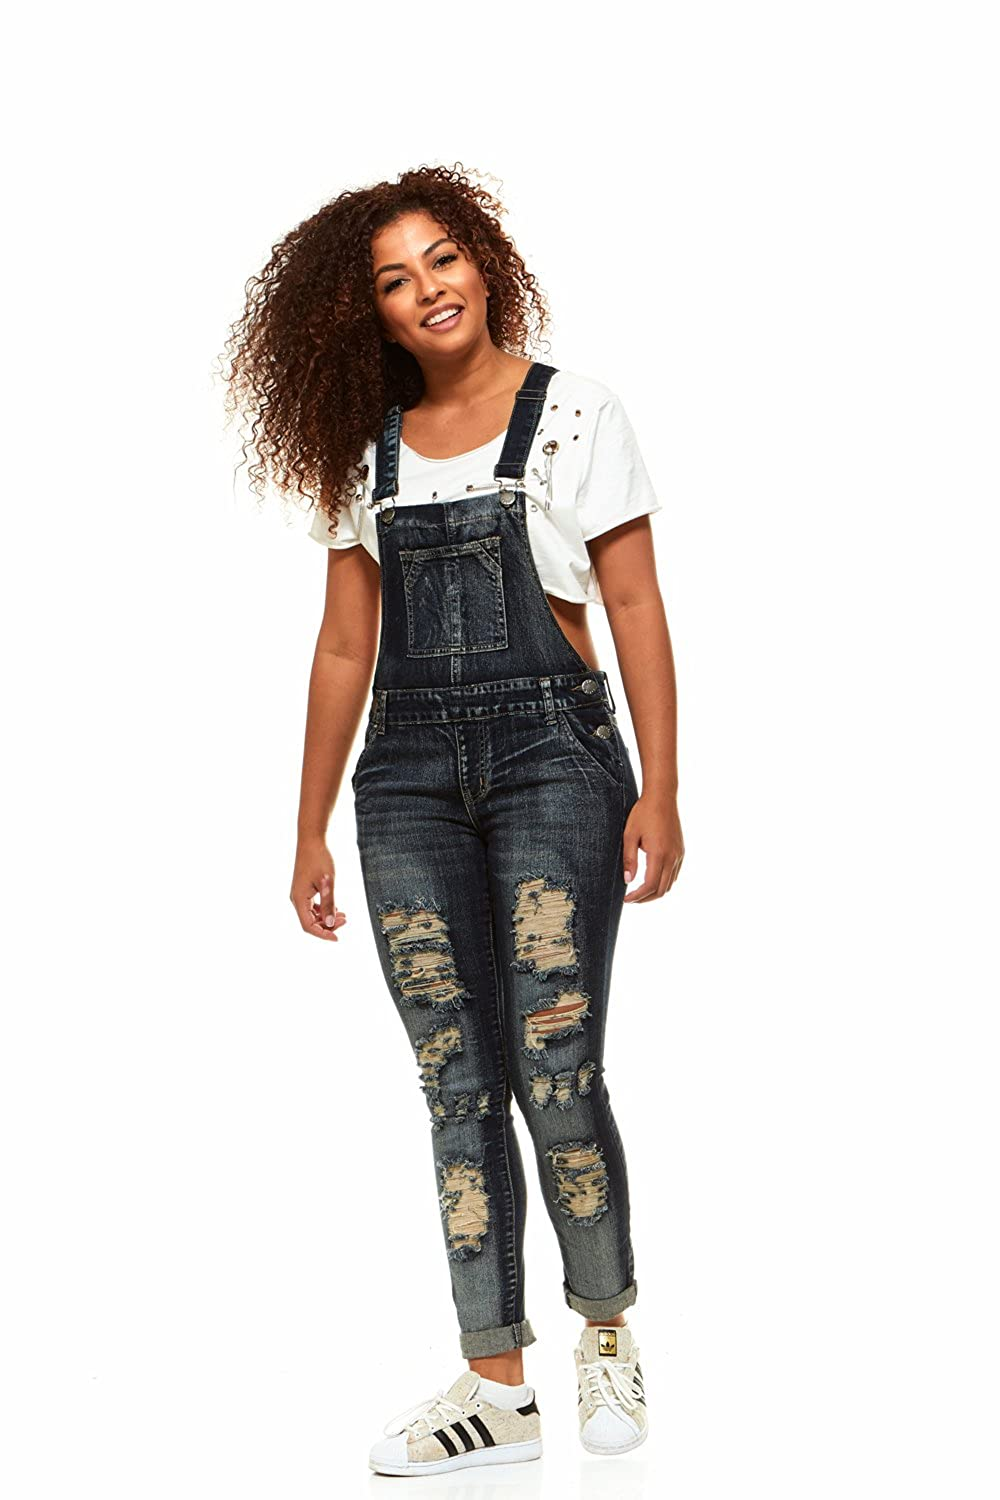 7e86de080 Amazon.com  V.I.P.JEANS Casual Blue Jean Bib Strap Pocket Overalls for  Women Slim Fit Junior or Plus Sizes Assorted Styles  Clothing